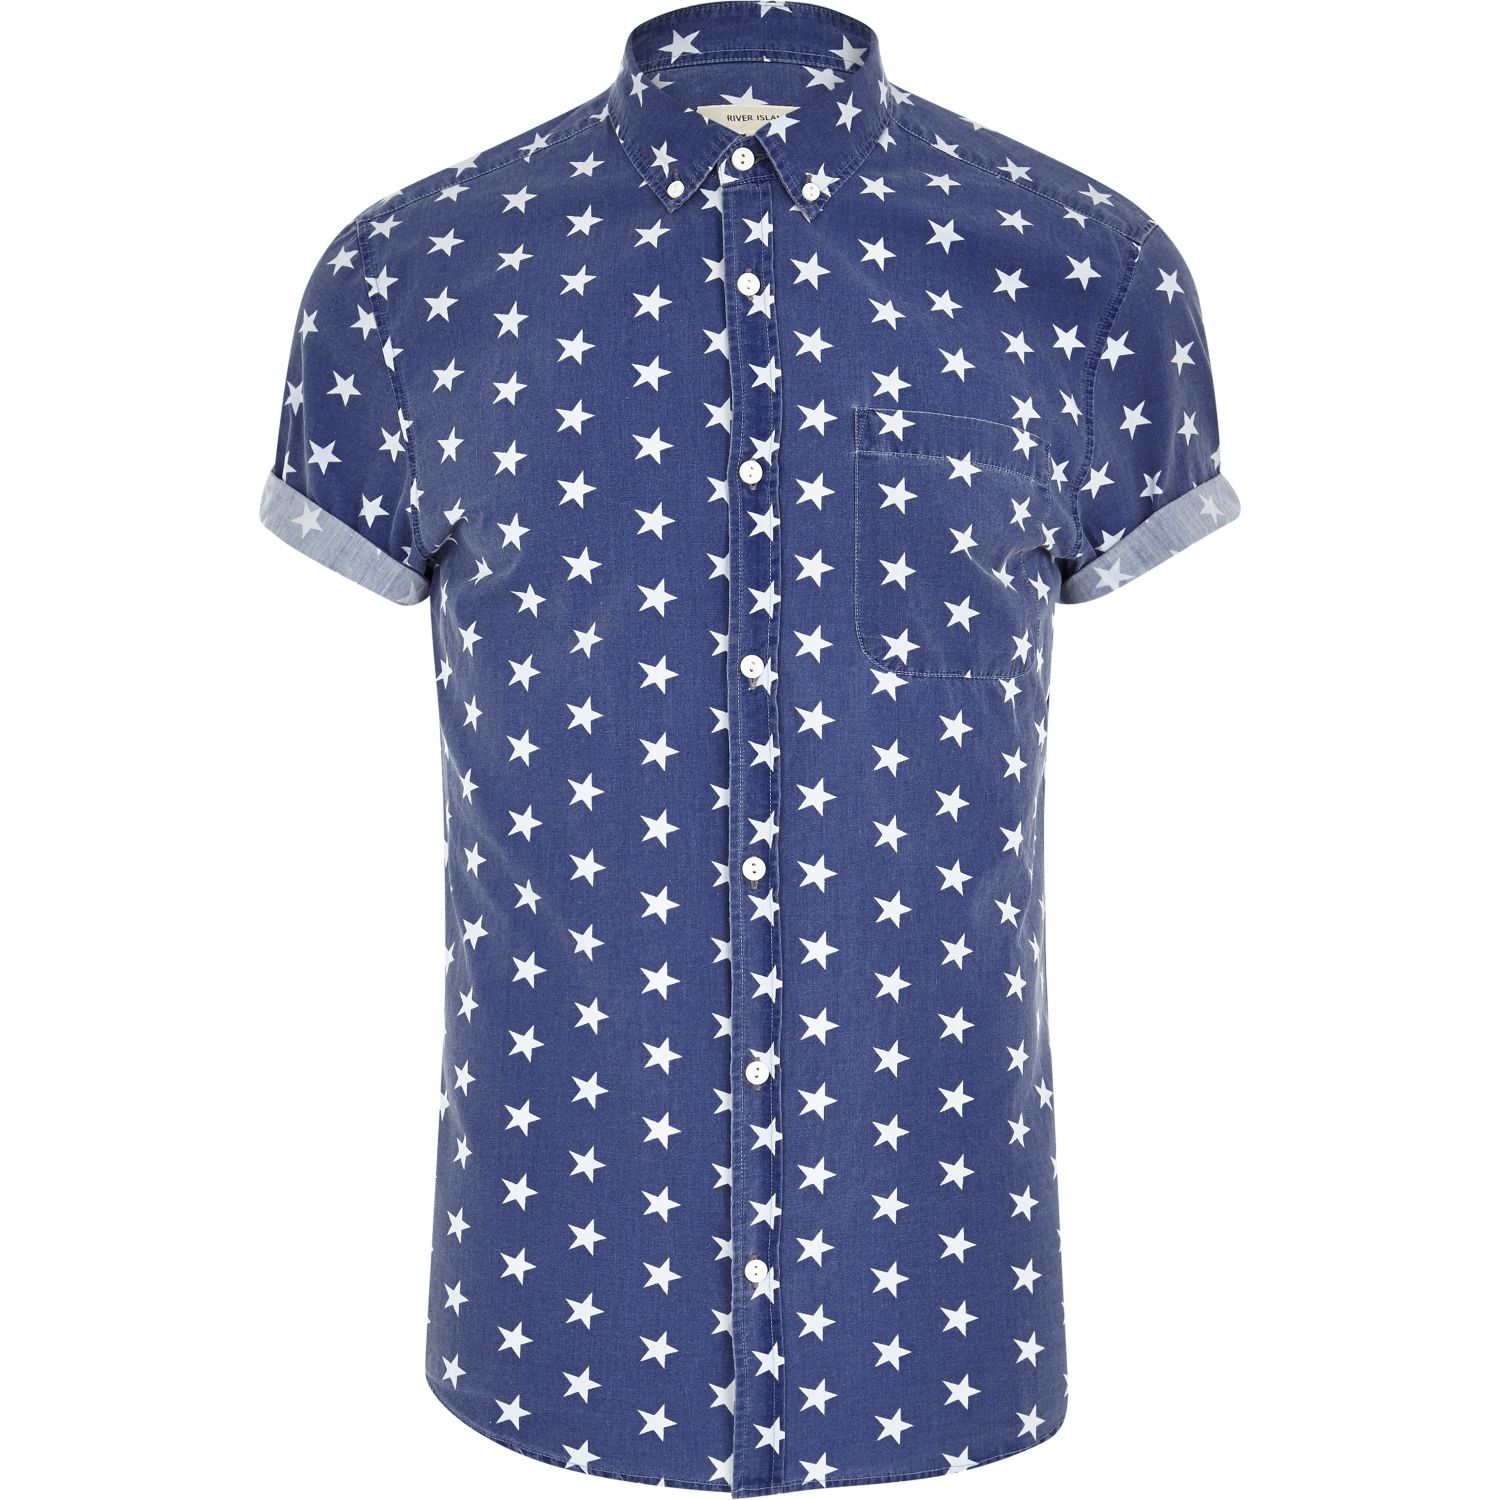 River island blue star print short sleeve shirt in blue for Printed short sleeve shirts